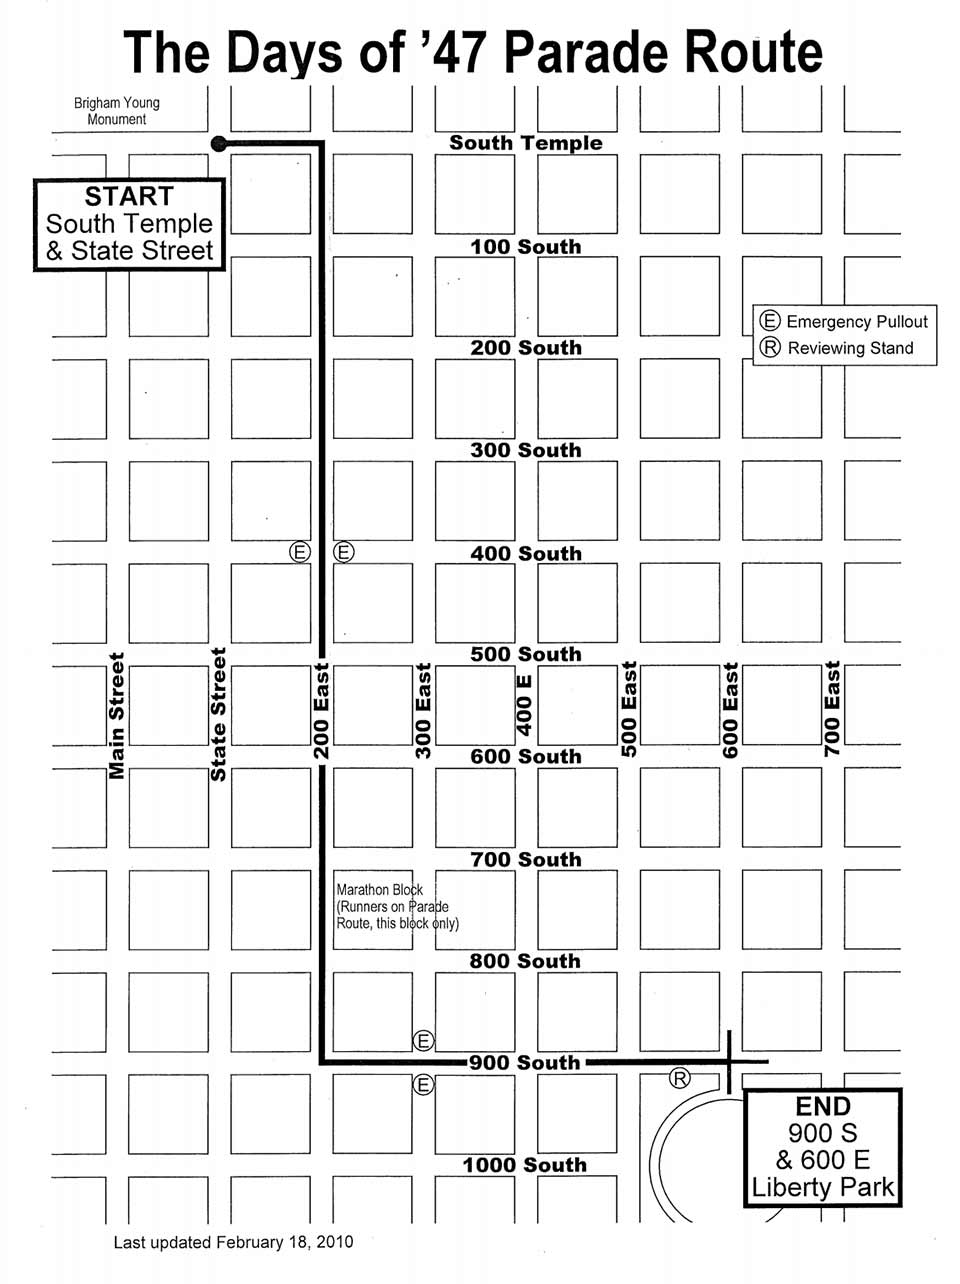 Events / Days of '47 Parade on cuyahoga county parcel maps, pinal county parcel maps, stanislaus county parcel maps, garfield county parcel maps, siskiyou county parcel maps, summit county parcel maps,